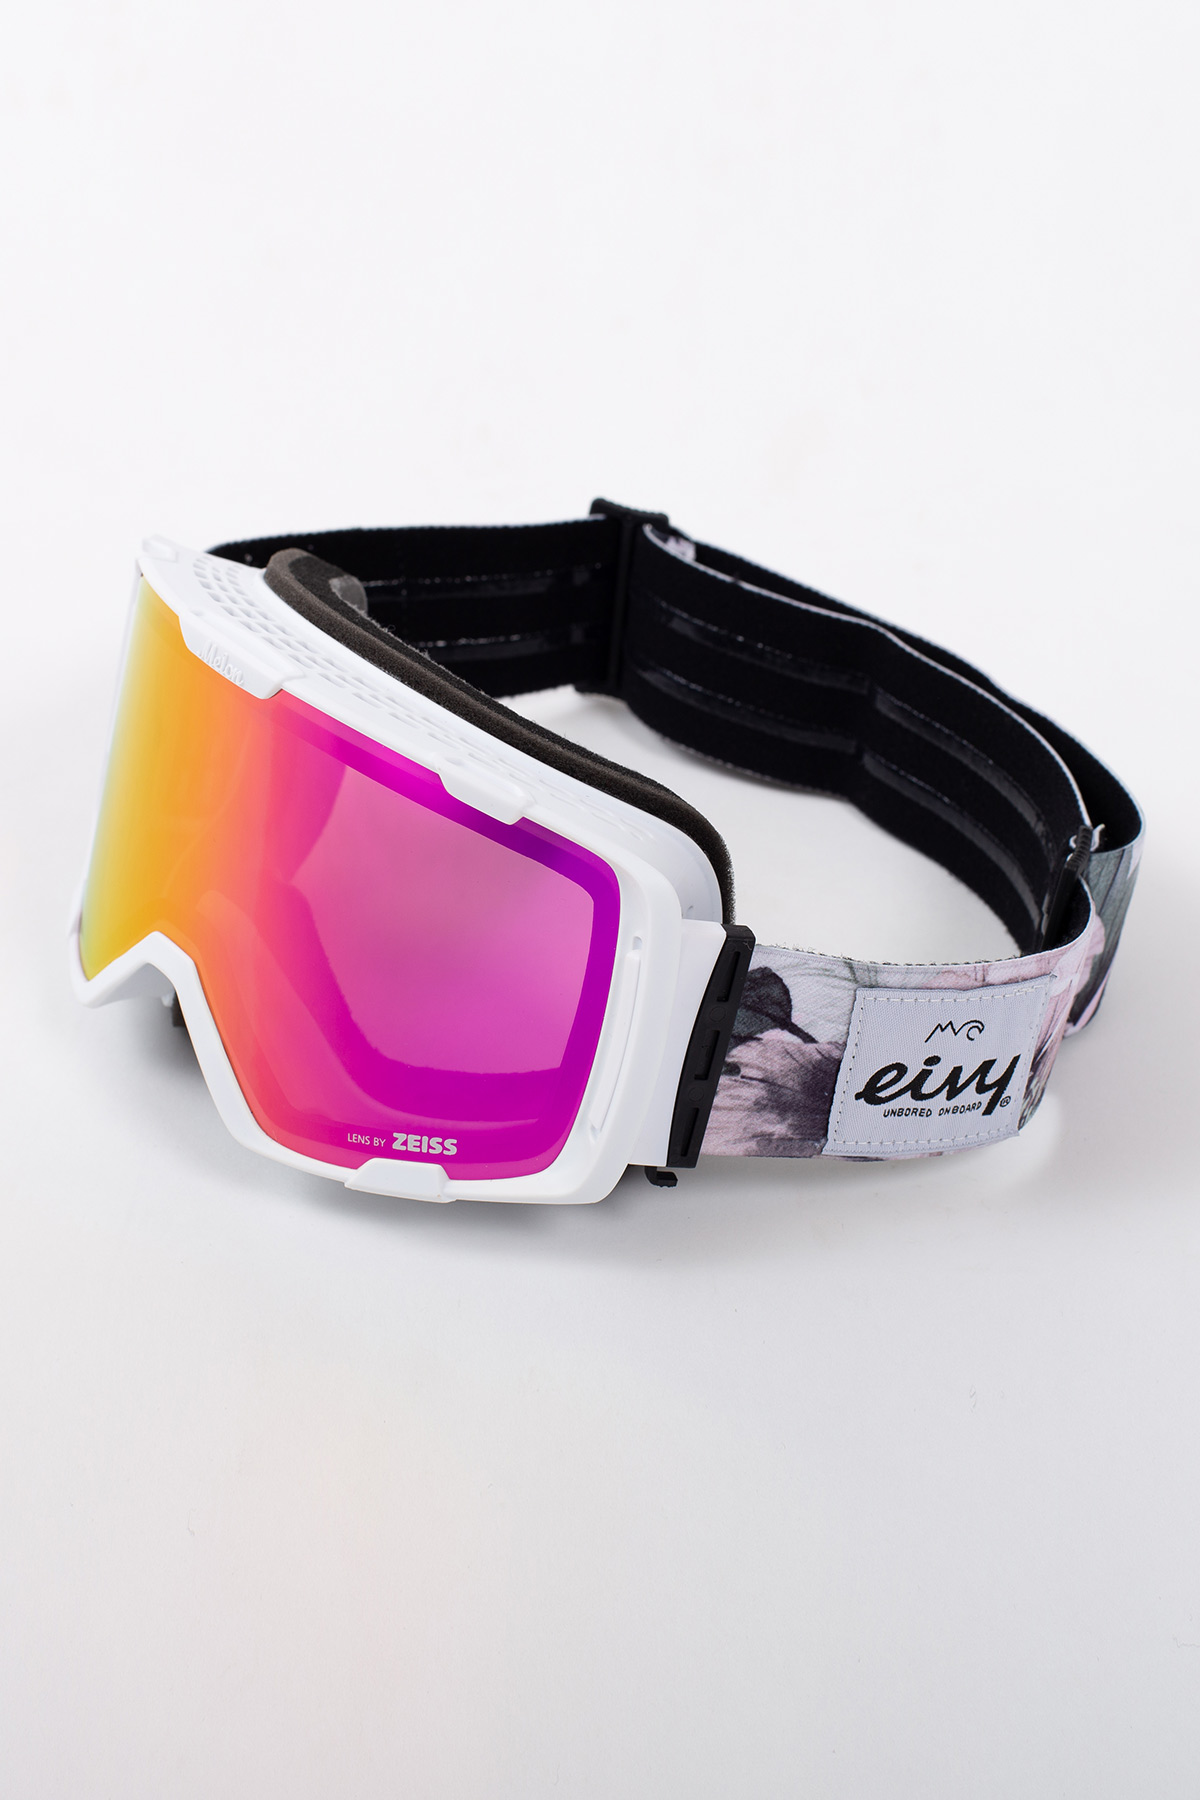 Goggles | Eivy x Melon Optics - Bloom | Onesize